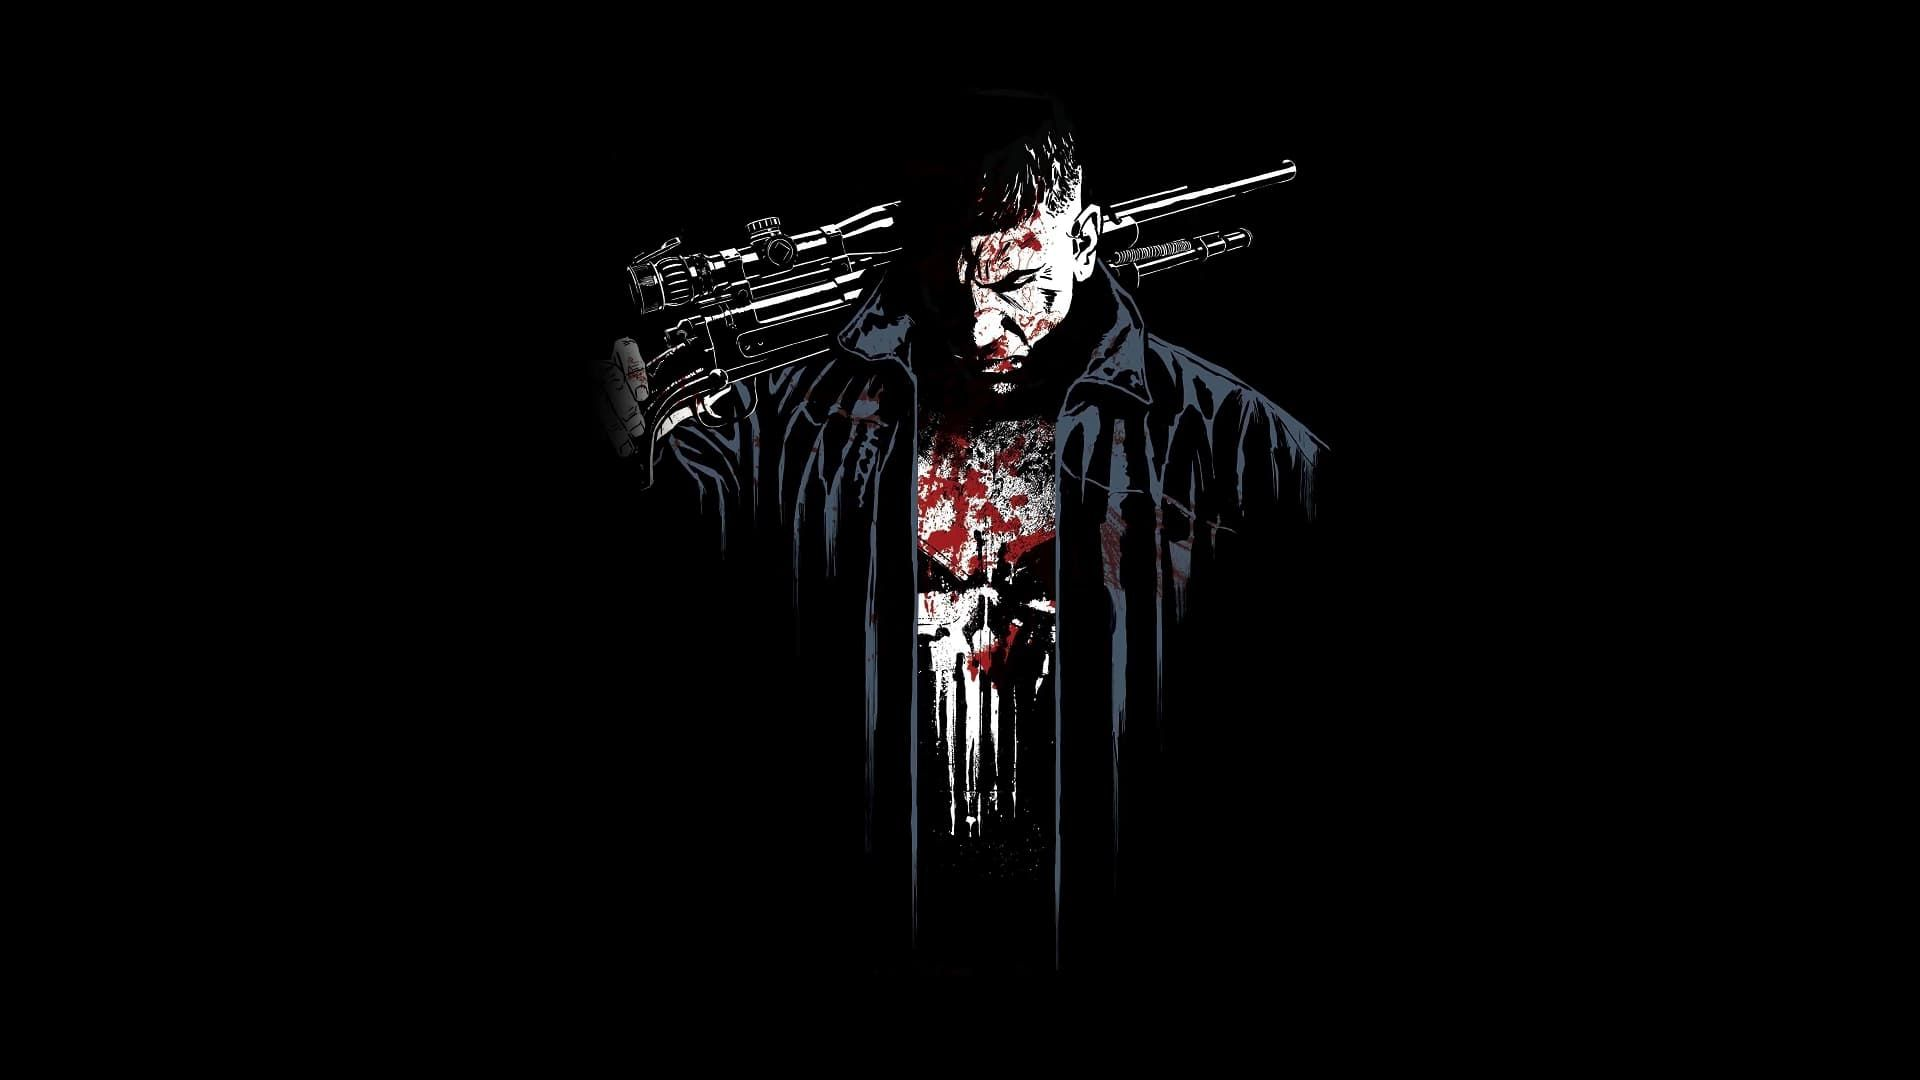 Pin by 1337x on 1337x in 2019 Iphone cartoon, Punisher